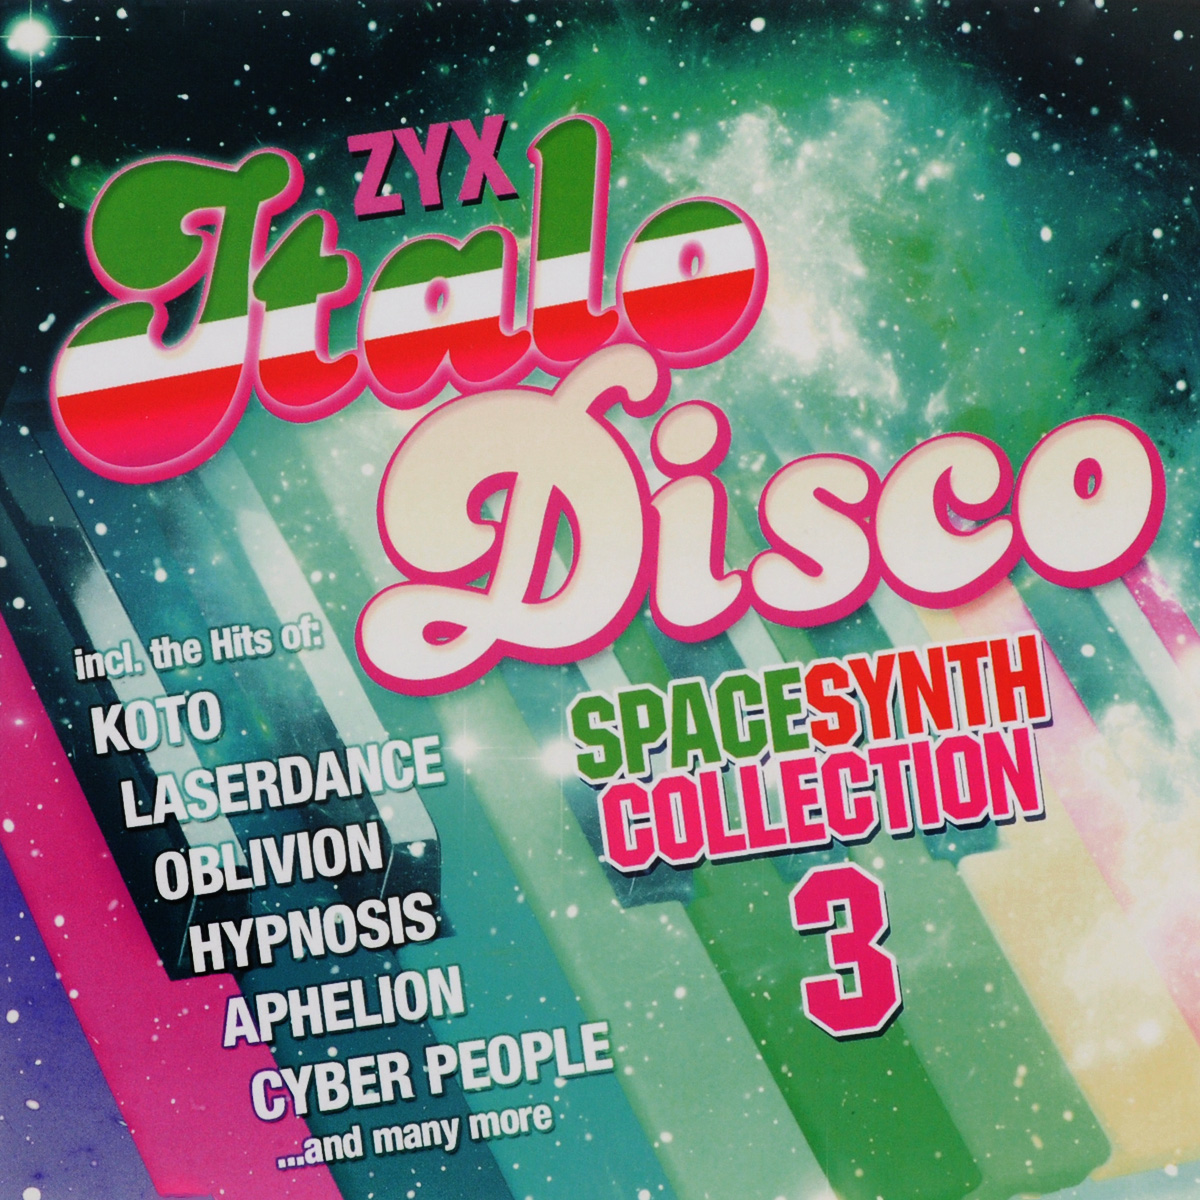 Laserdance,Steve Burbon,Aphelion,X-plosion,Spacequake,Blue Star Project,Ralph River Band,Cyber People,Man Machine Zyx Italo Disco. Spacesynth Collection 3 (2 CD) roxanne джо локвуд cyber people hypnosis tommy candy belle сюзанна милс italo disco collection 16 3 cd page 9